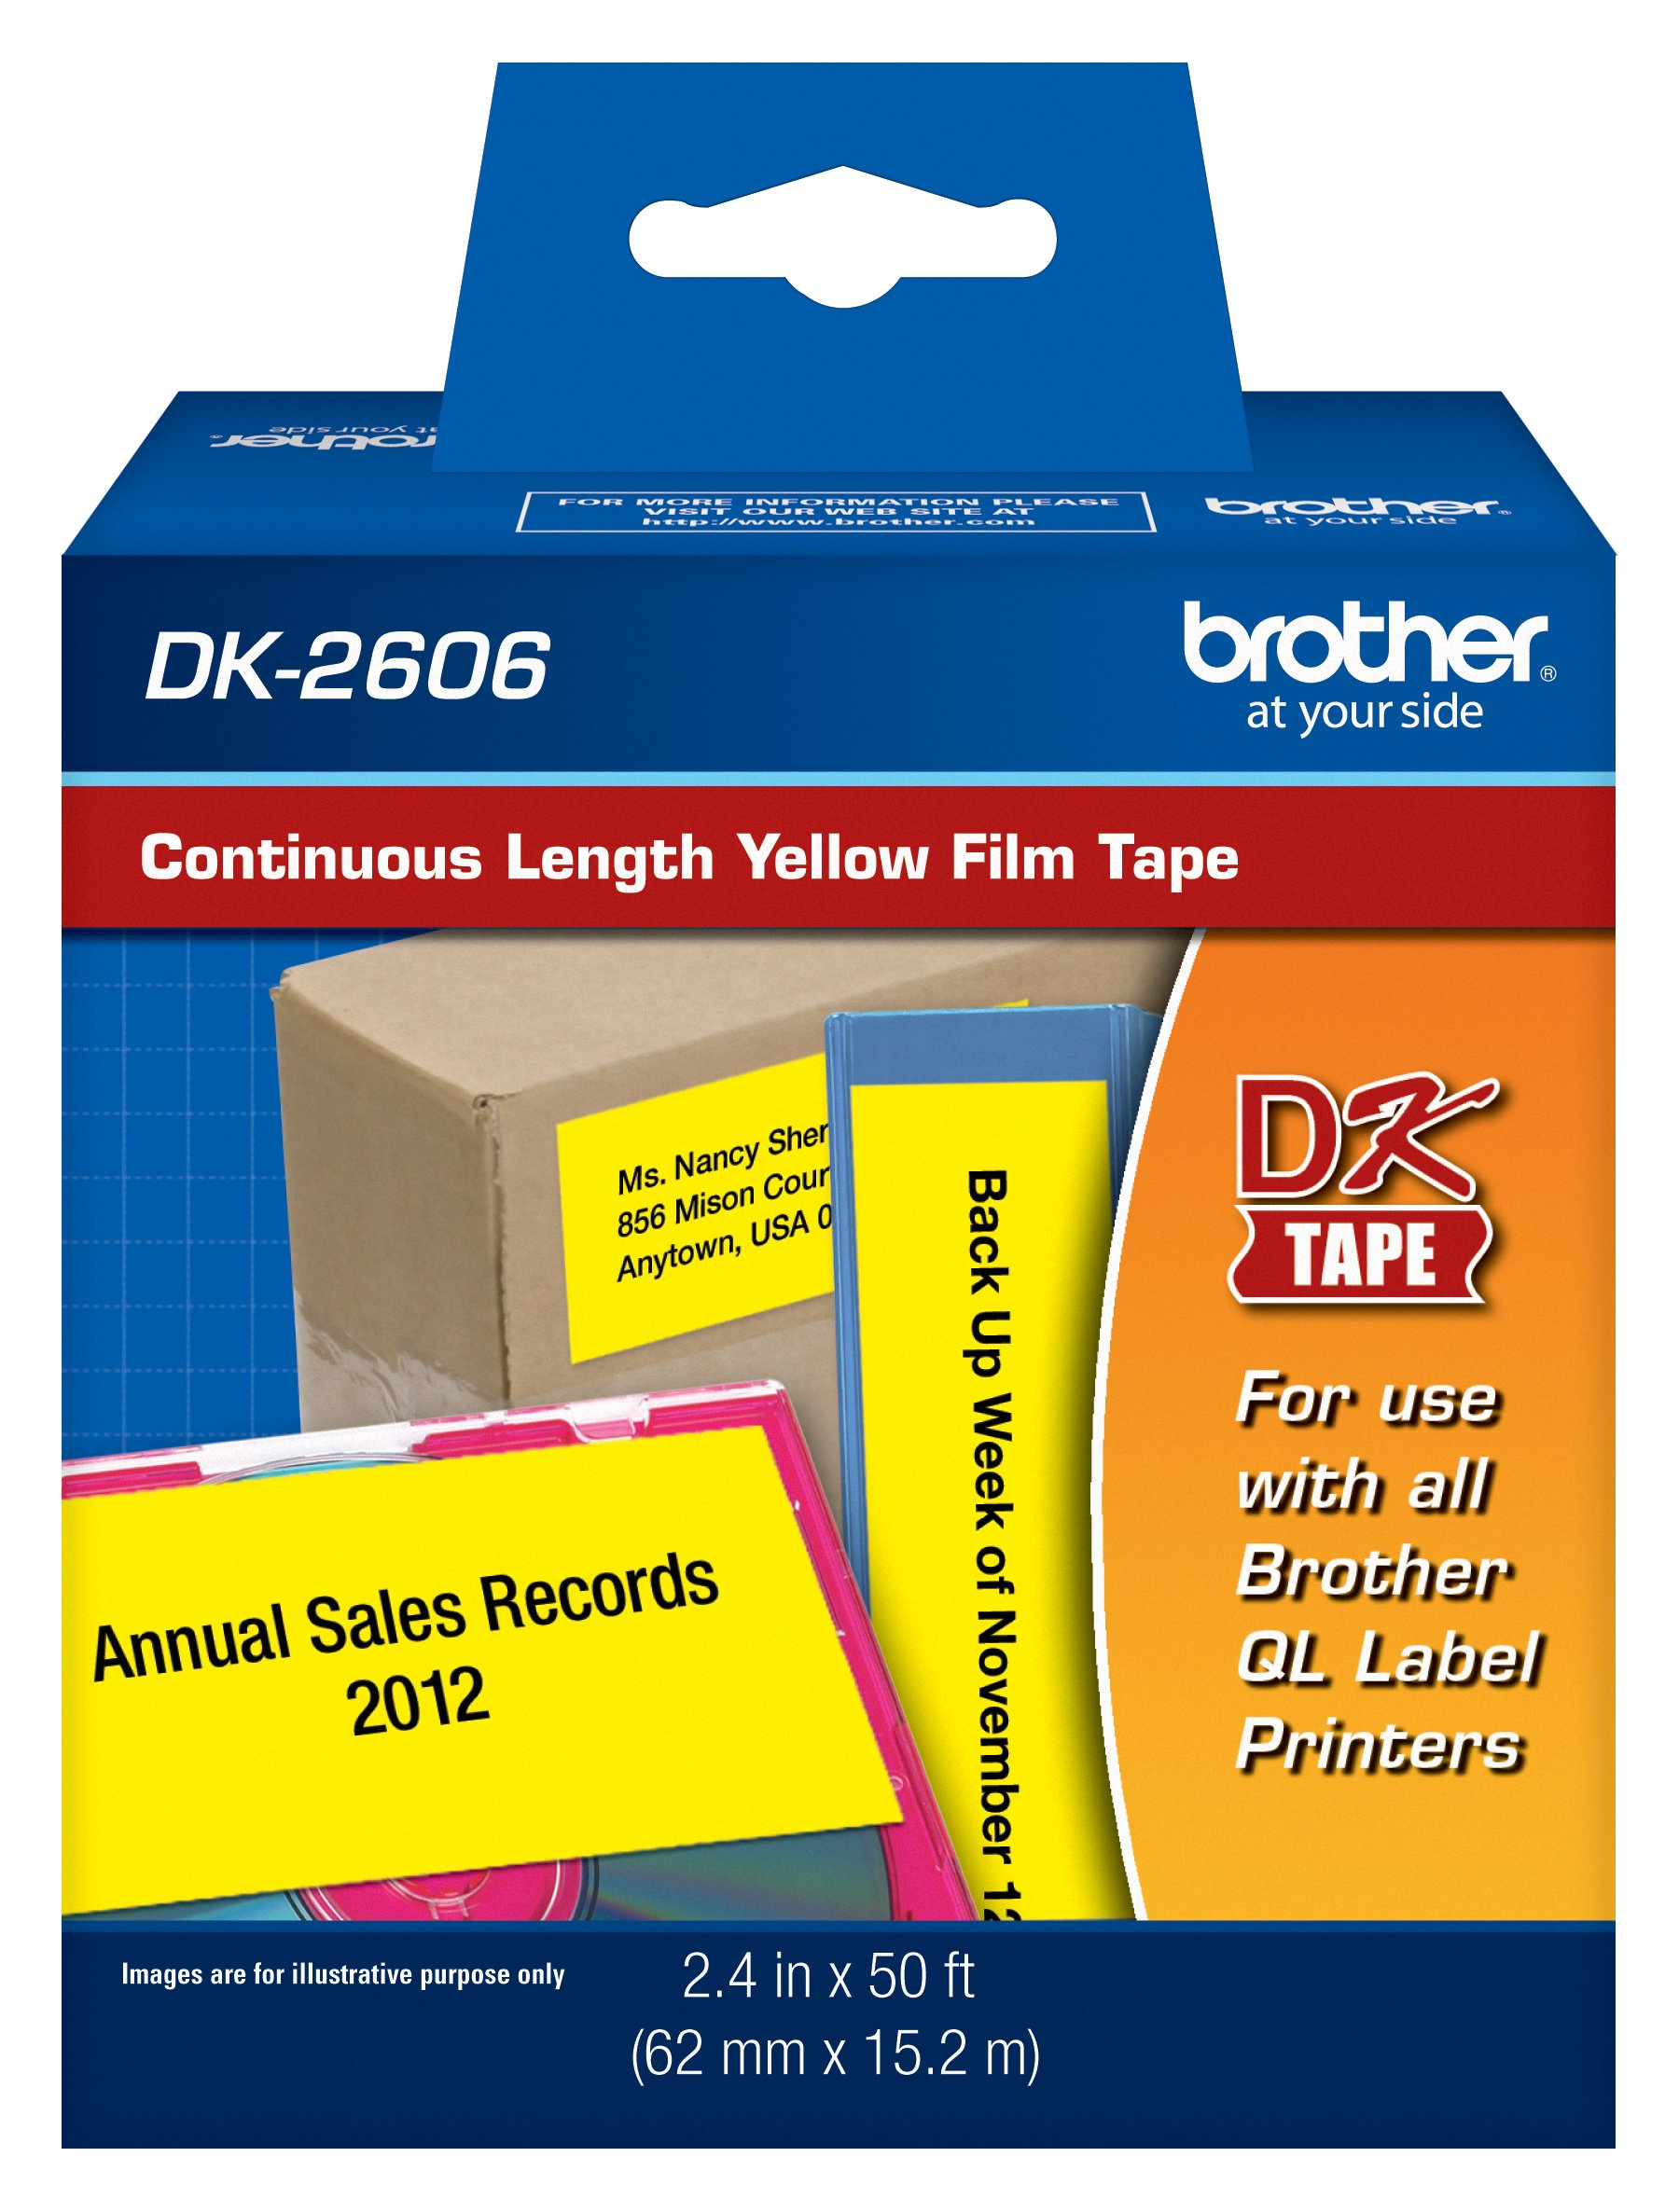 Brother Genuine DK-2606 Continuous Length Film Tape, 2.4 in x 50 ft (62 mm x 15.2 m) Black on White, Retail Packaging by Brother